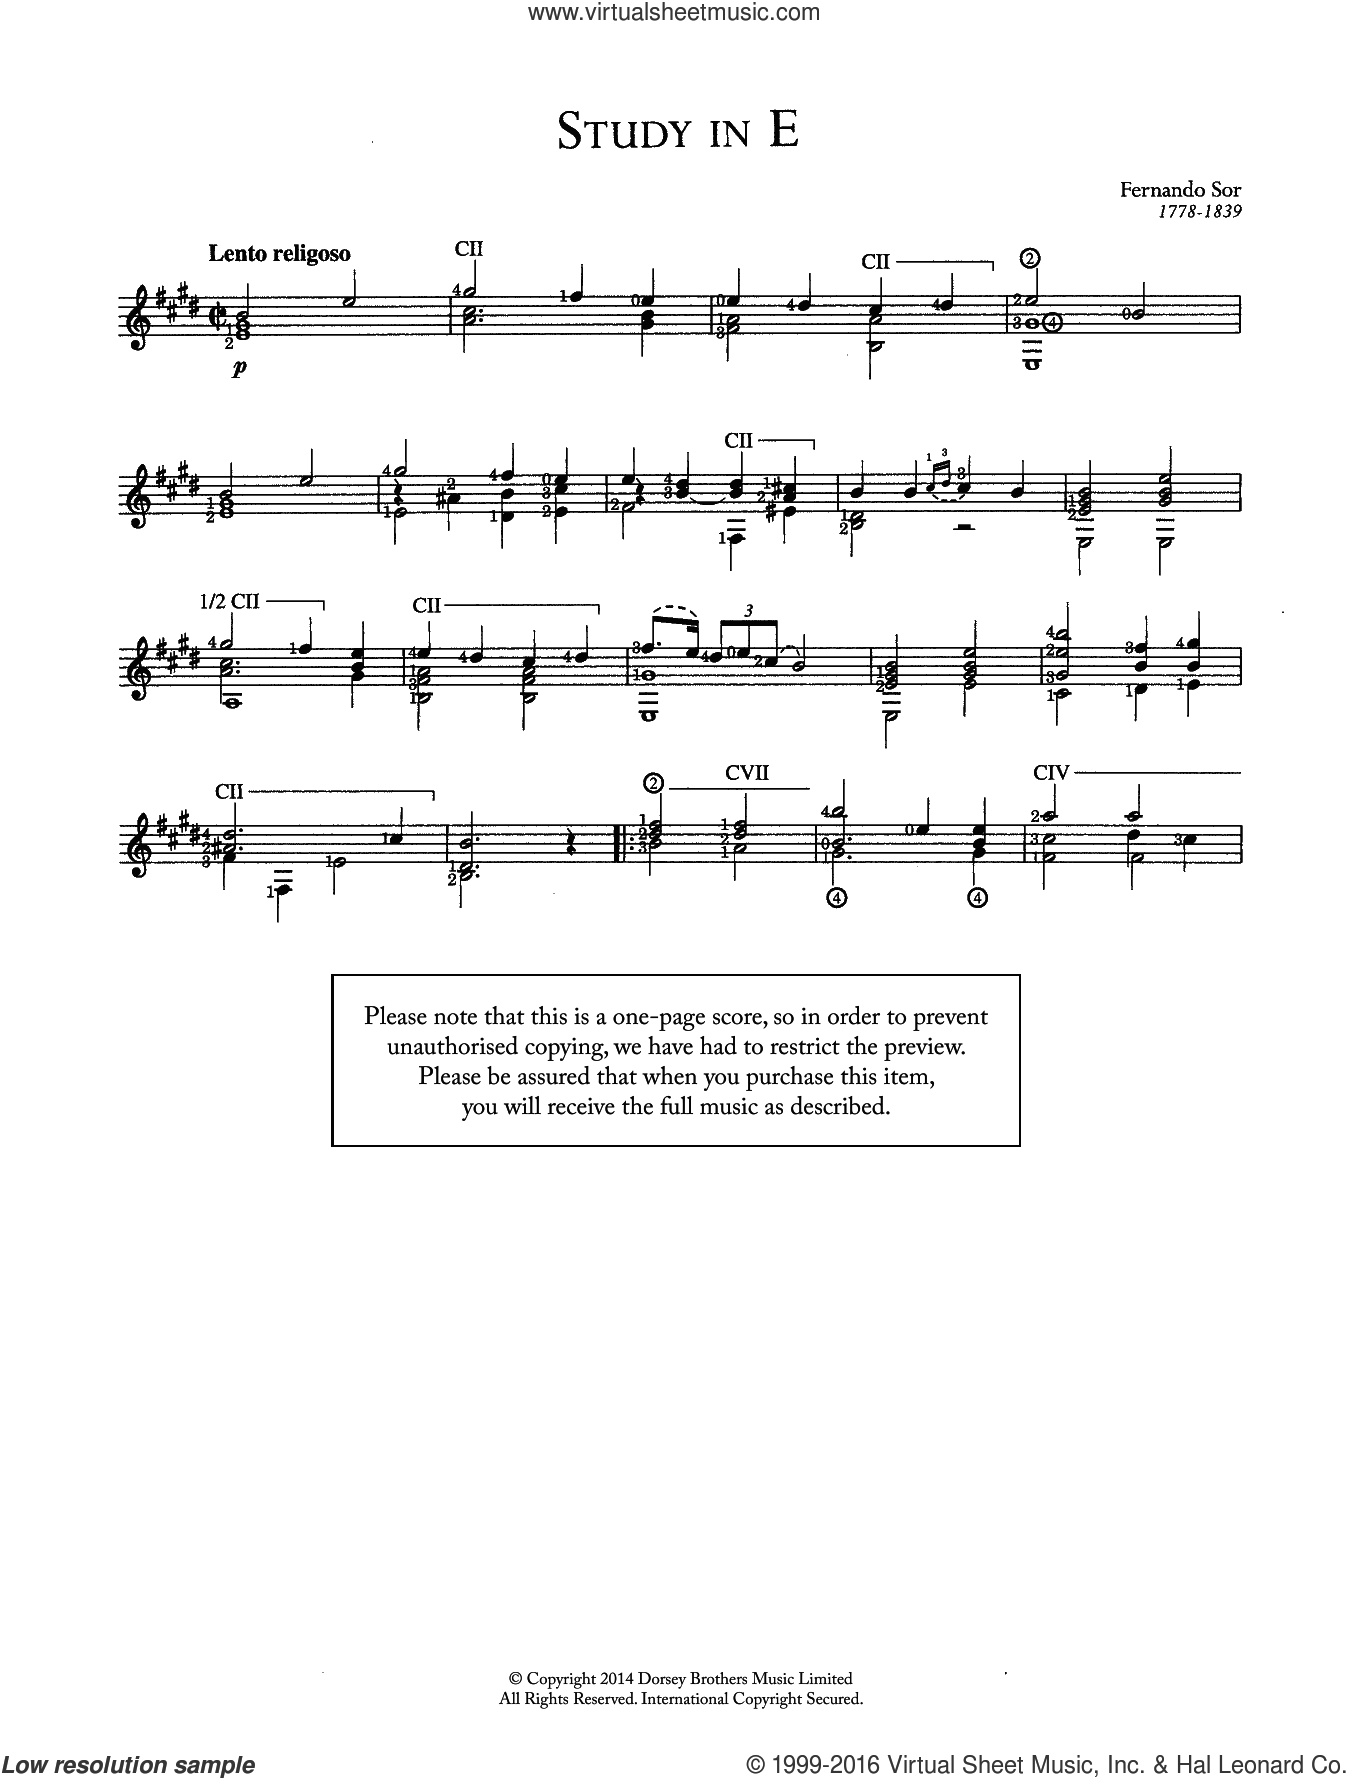 Study In E sheet music for guitar solo (chords) by Fernando Sor, classical score, easy guitar (chords). Score Image Preview.